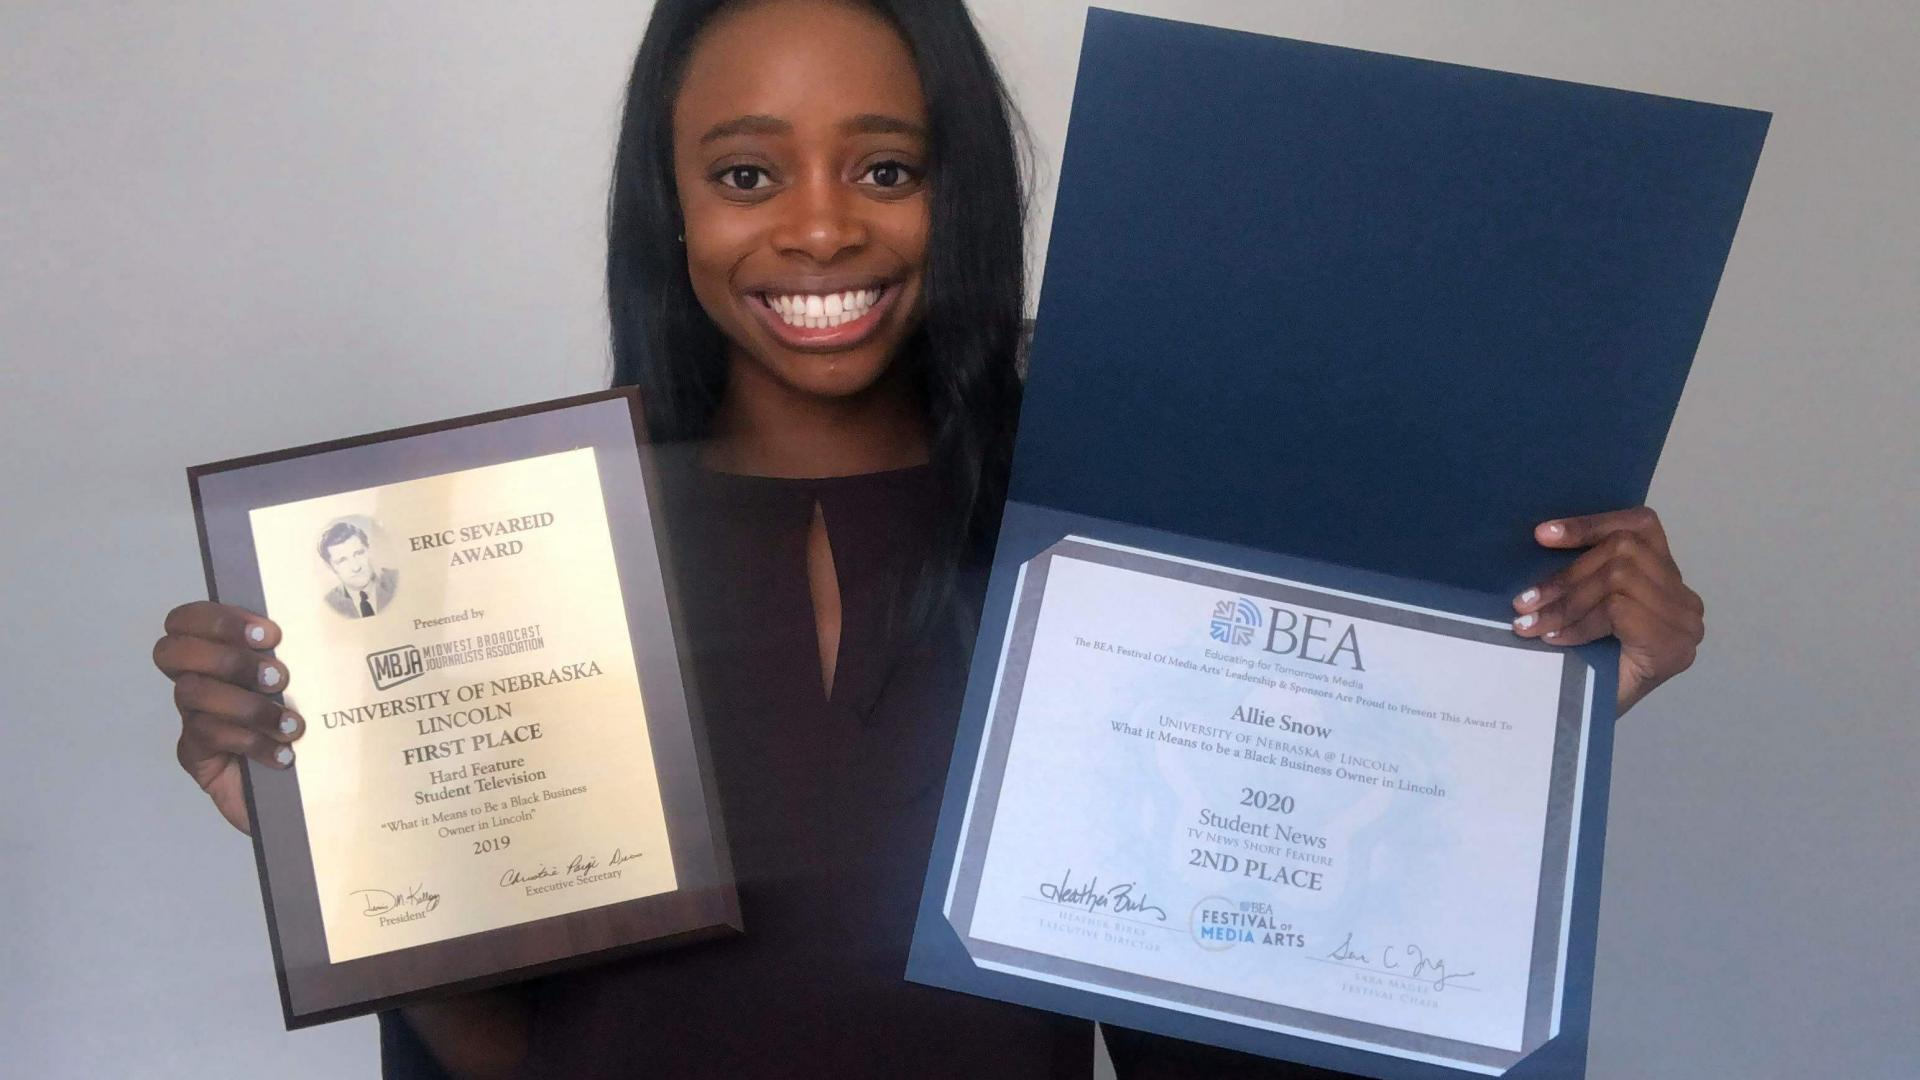 Competition winner in broadcasting major